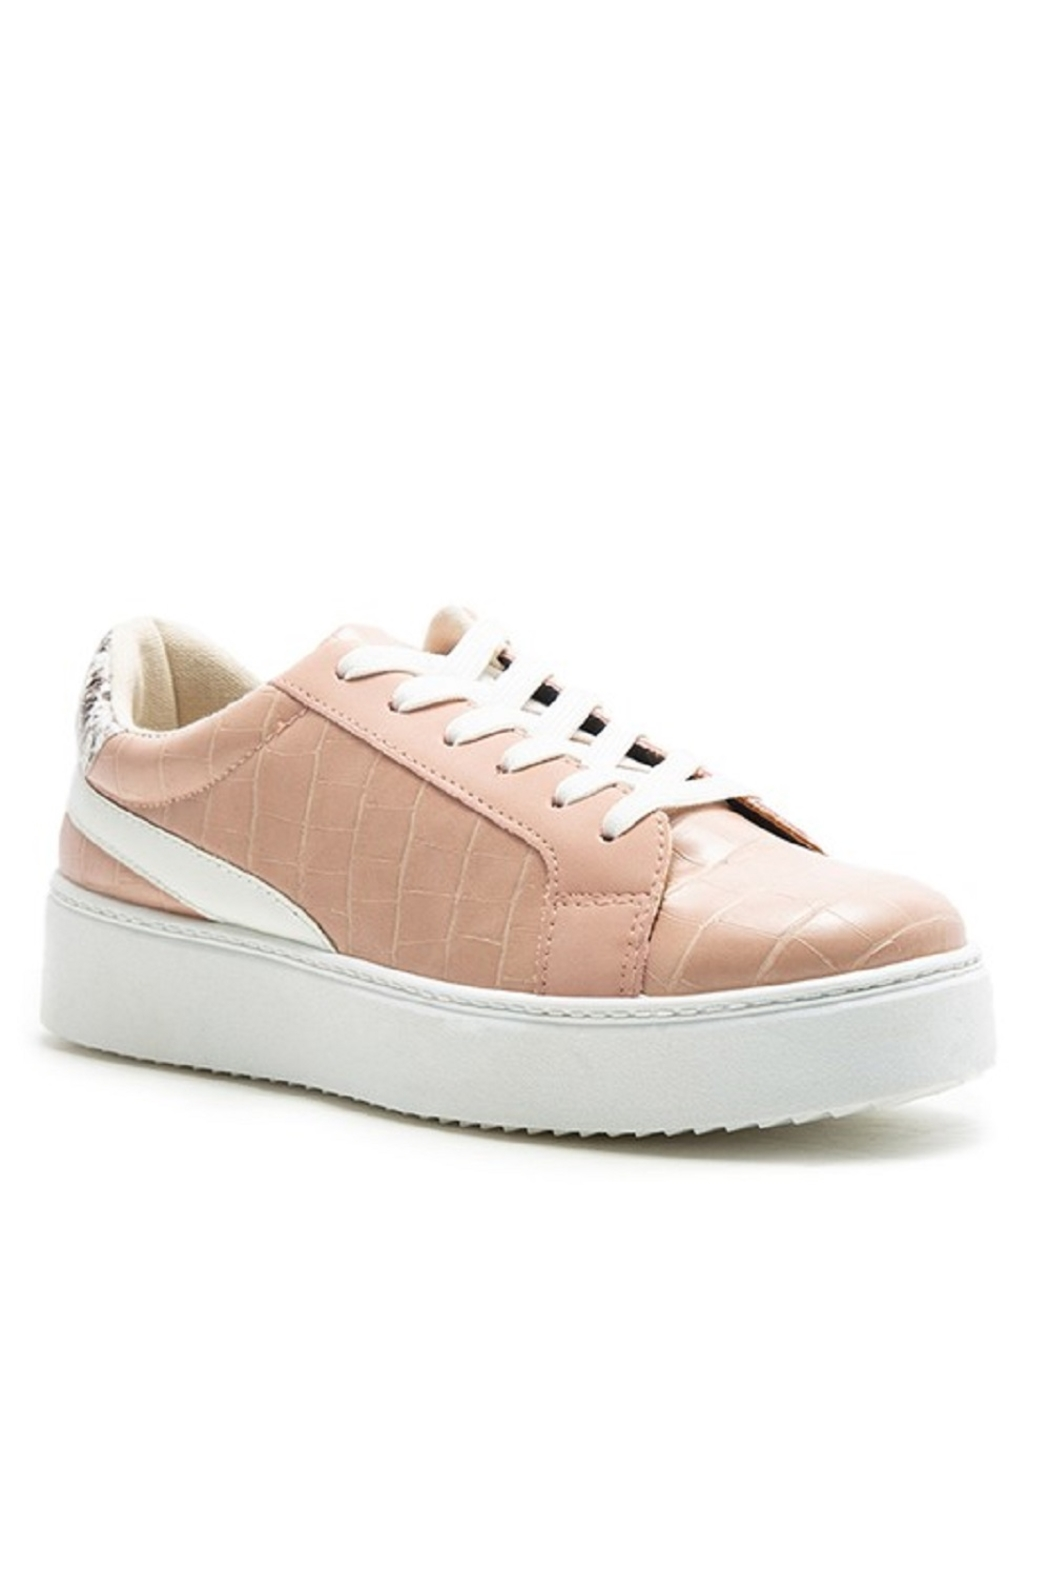 Our Love Letter Platform Sneakers - Main Image